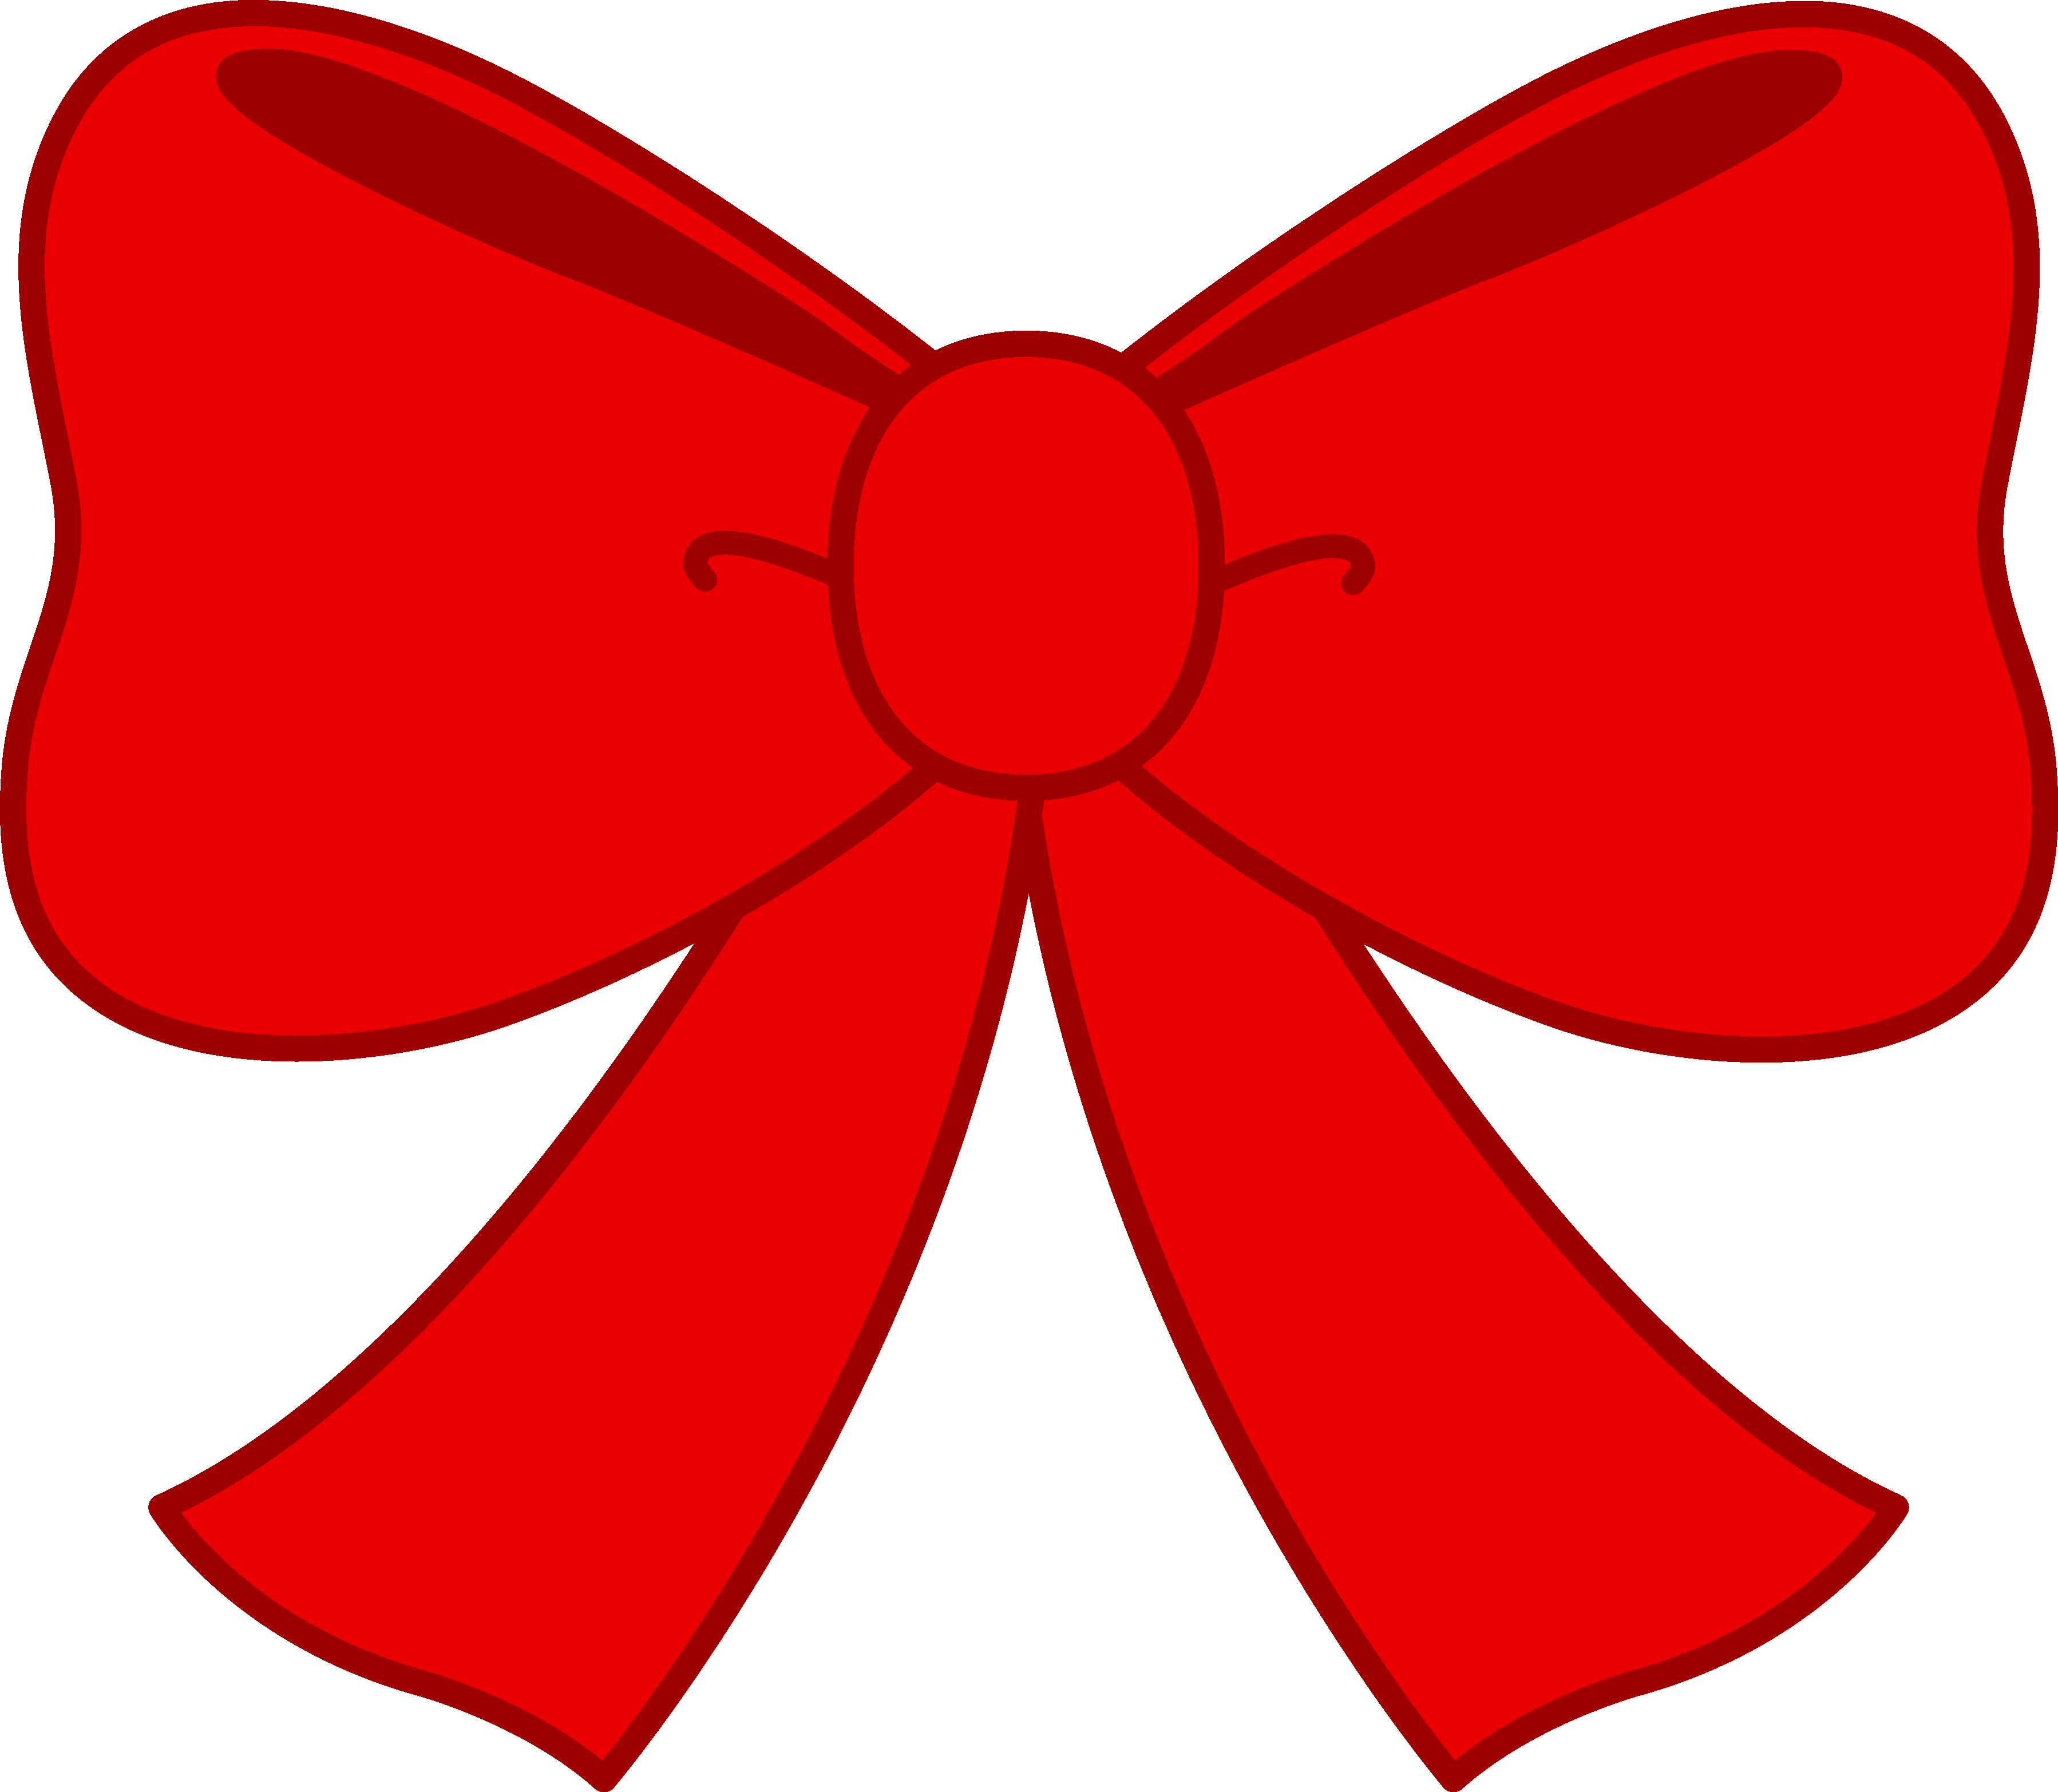 Cute Red Bow Clipart - Free .-Cute Red Bow Clipart - Free .-10